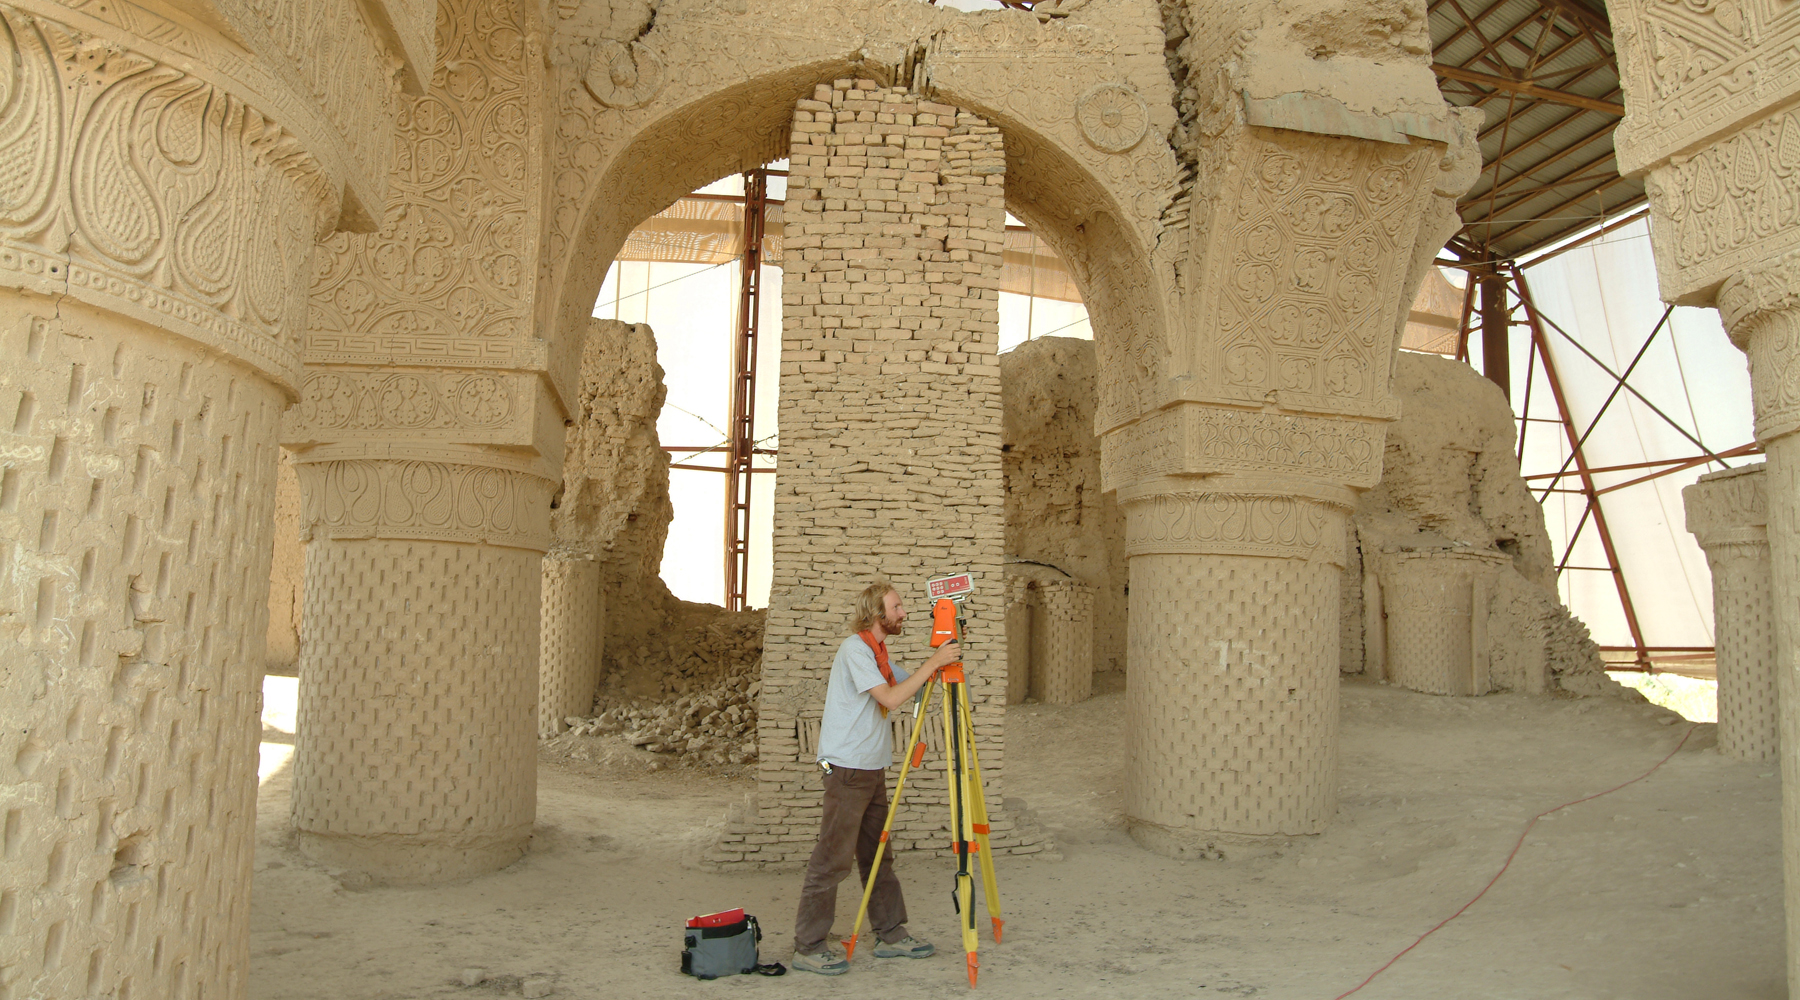 09 Mosque of Haji Piada, Afghanistan - Topographical survey